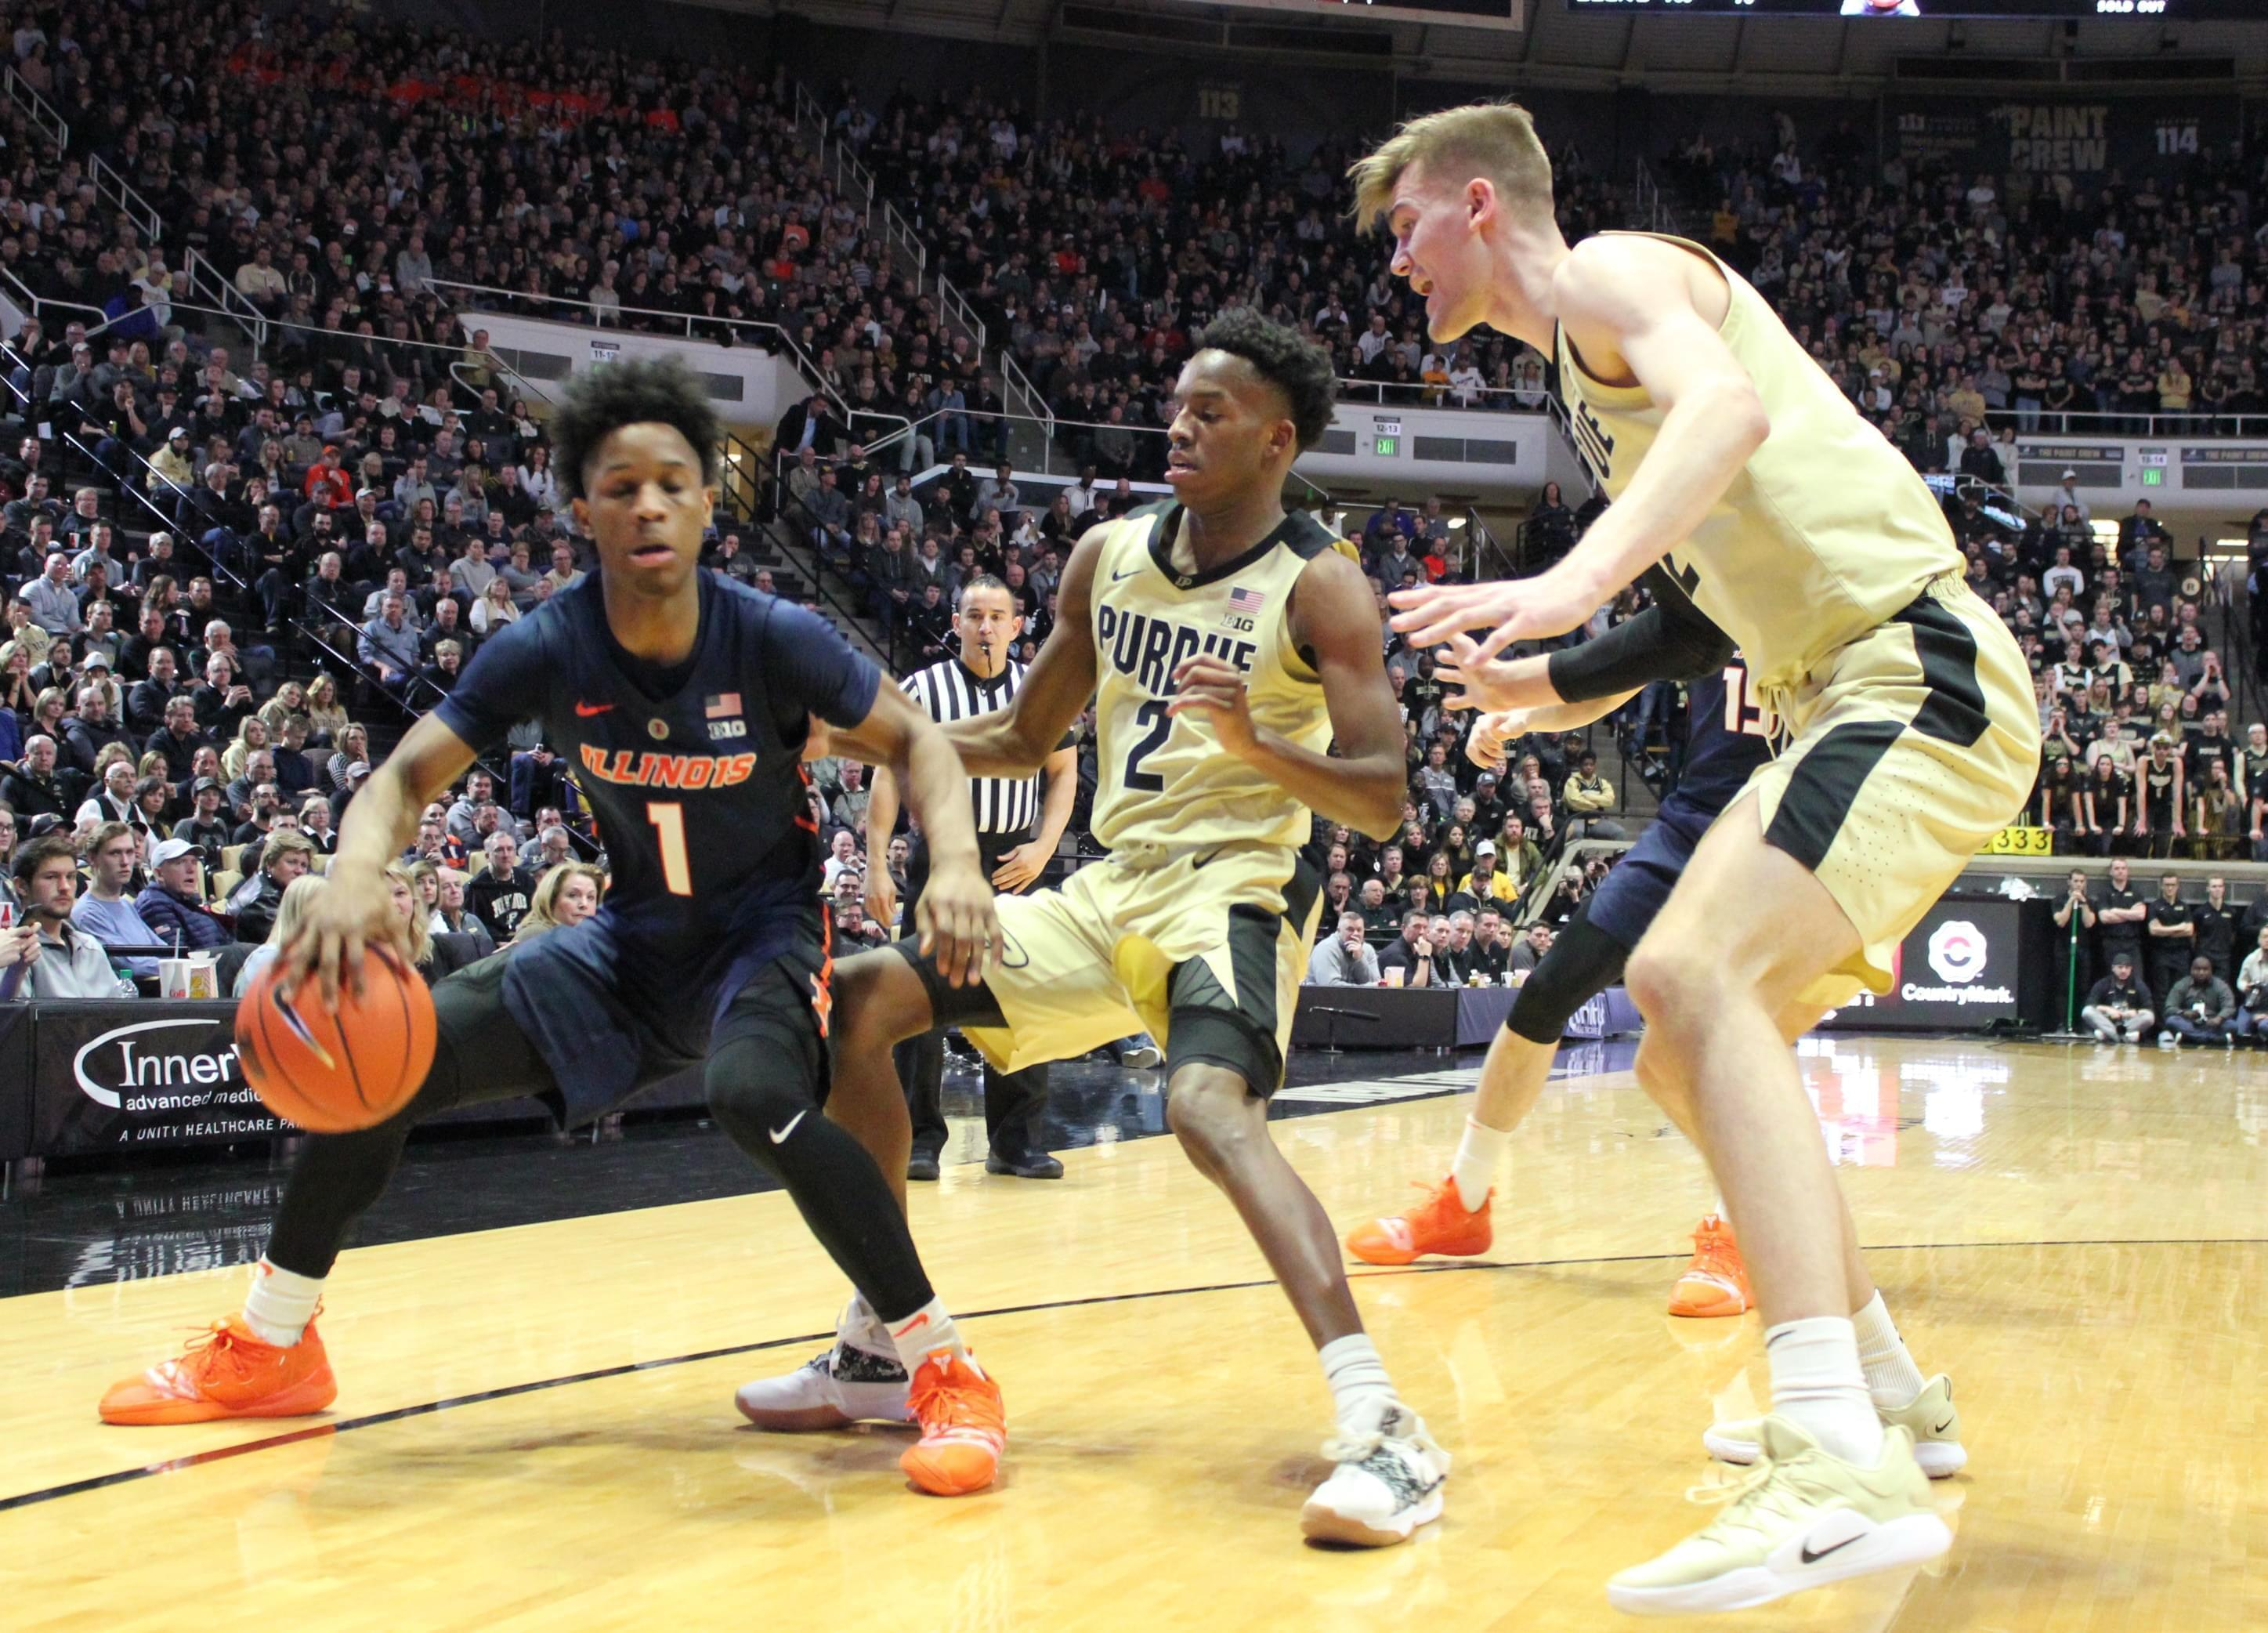 Purdue's Matt Haarms (right) and Eric Hunter defend Illinois' Trent Frazier during Purdue's 73-56 win Wednesday night in West Lafayette, Indiana.